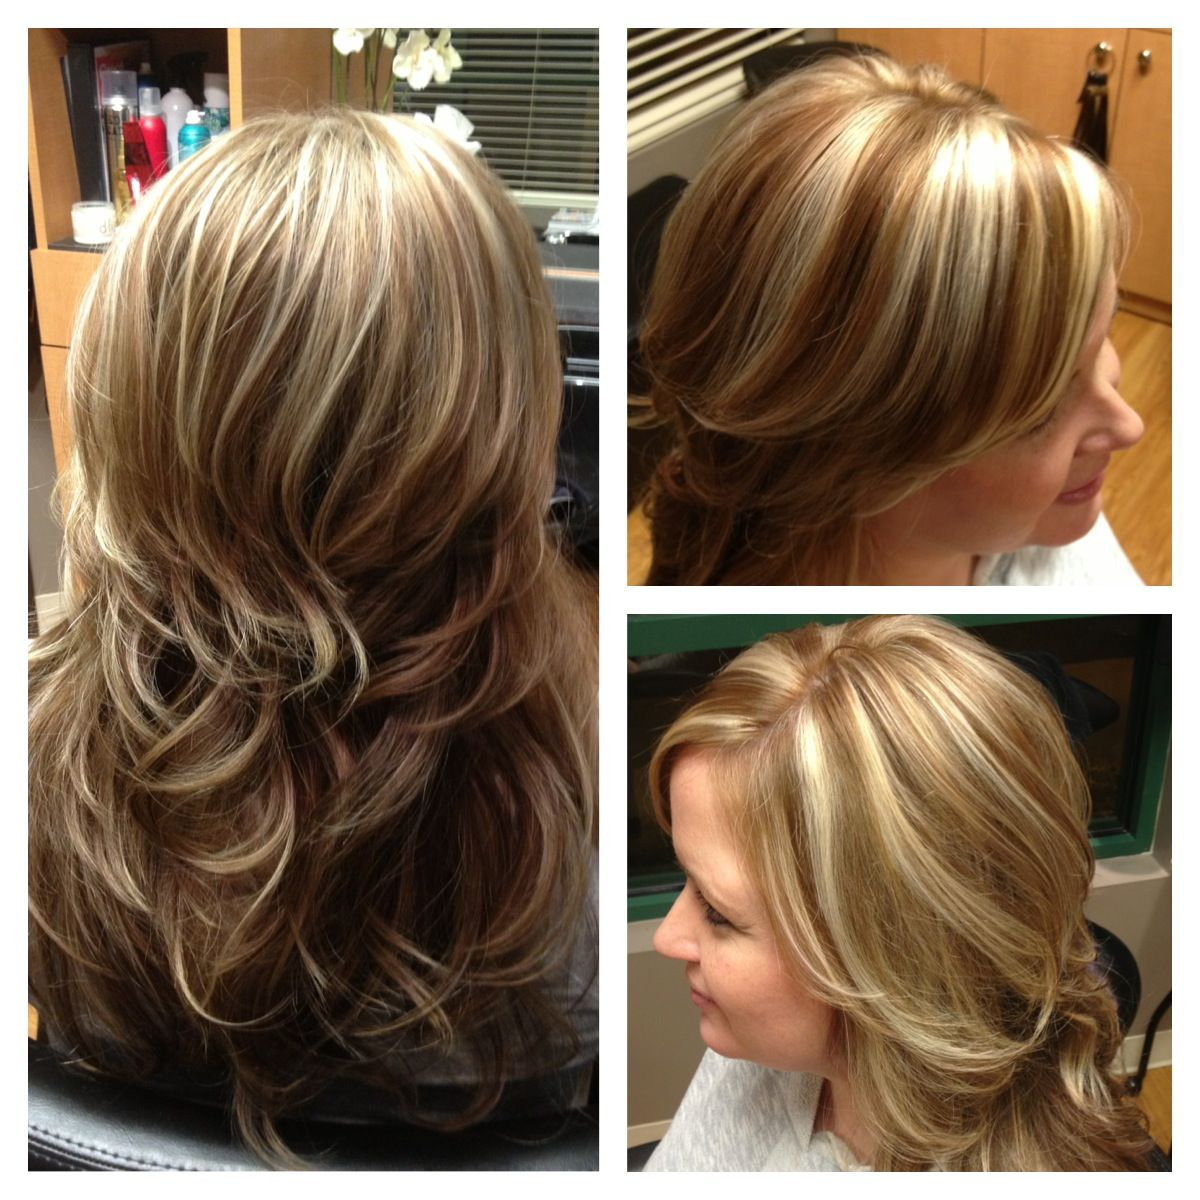 Pictures Of Light Brown Hair With White Highlights Daily Health